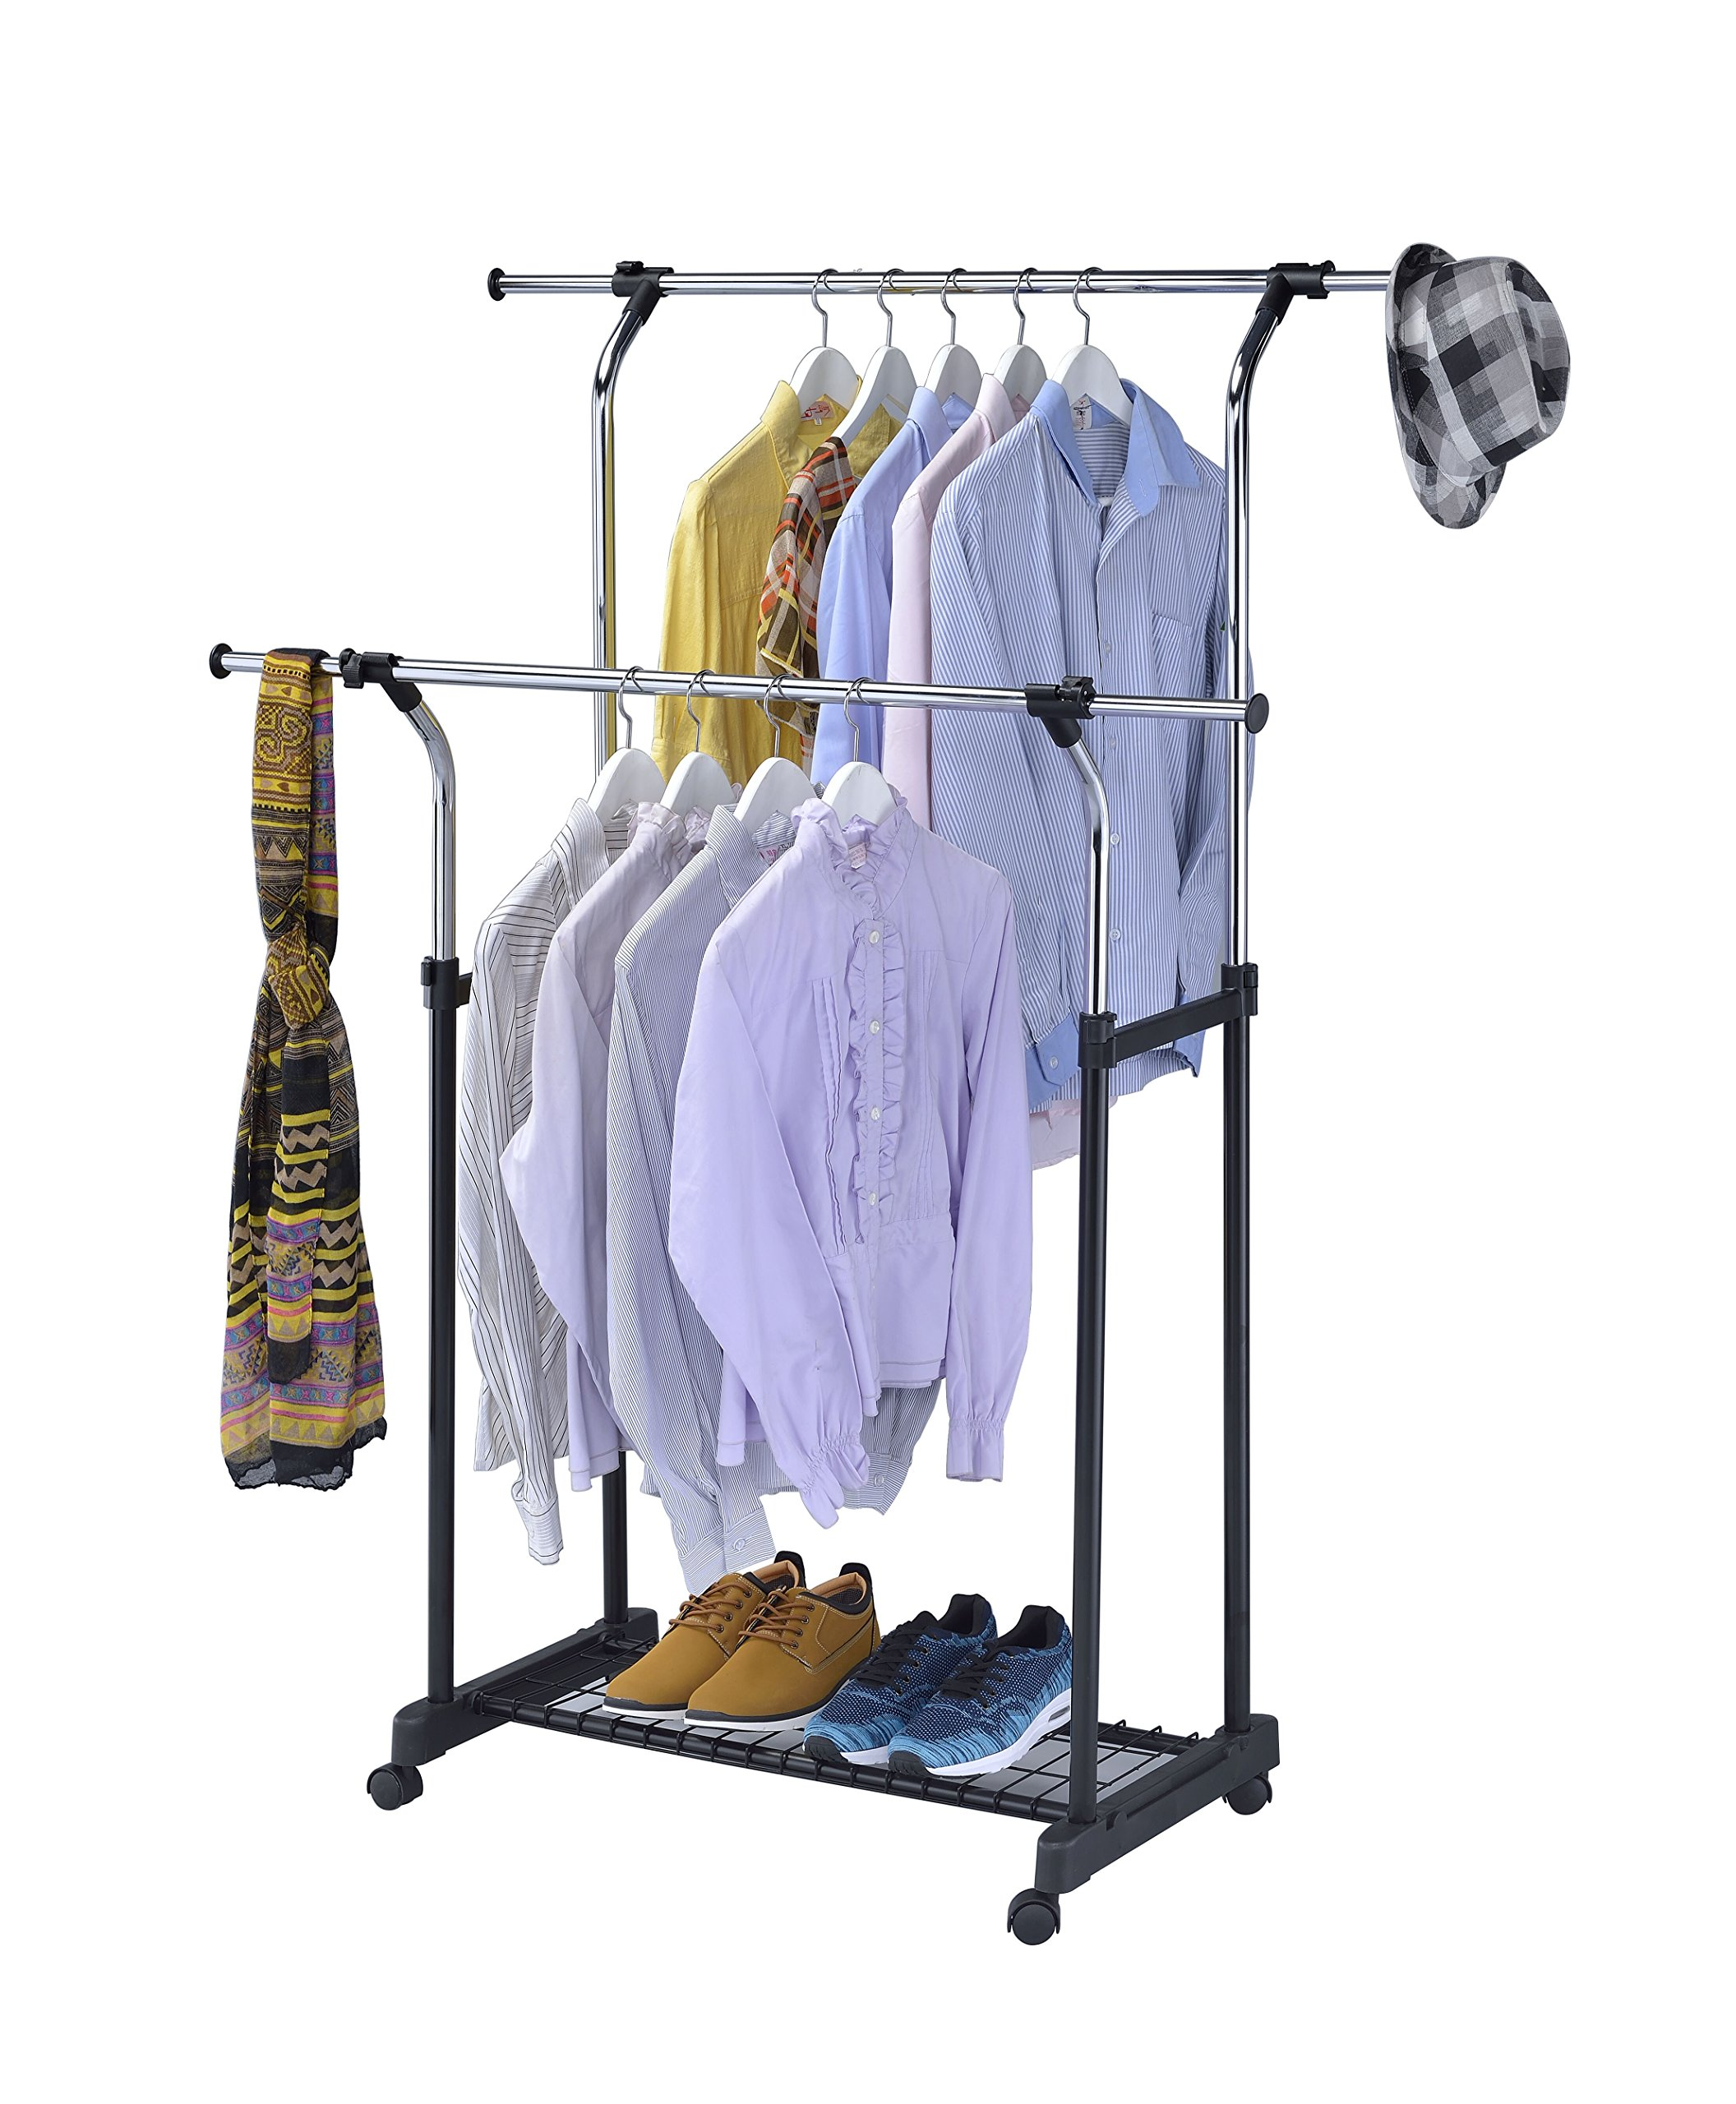 homdox garment rolling heavy clothes rack com ip hanging hanger walmart commercial duty shelf